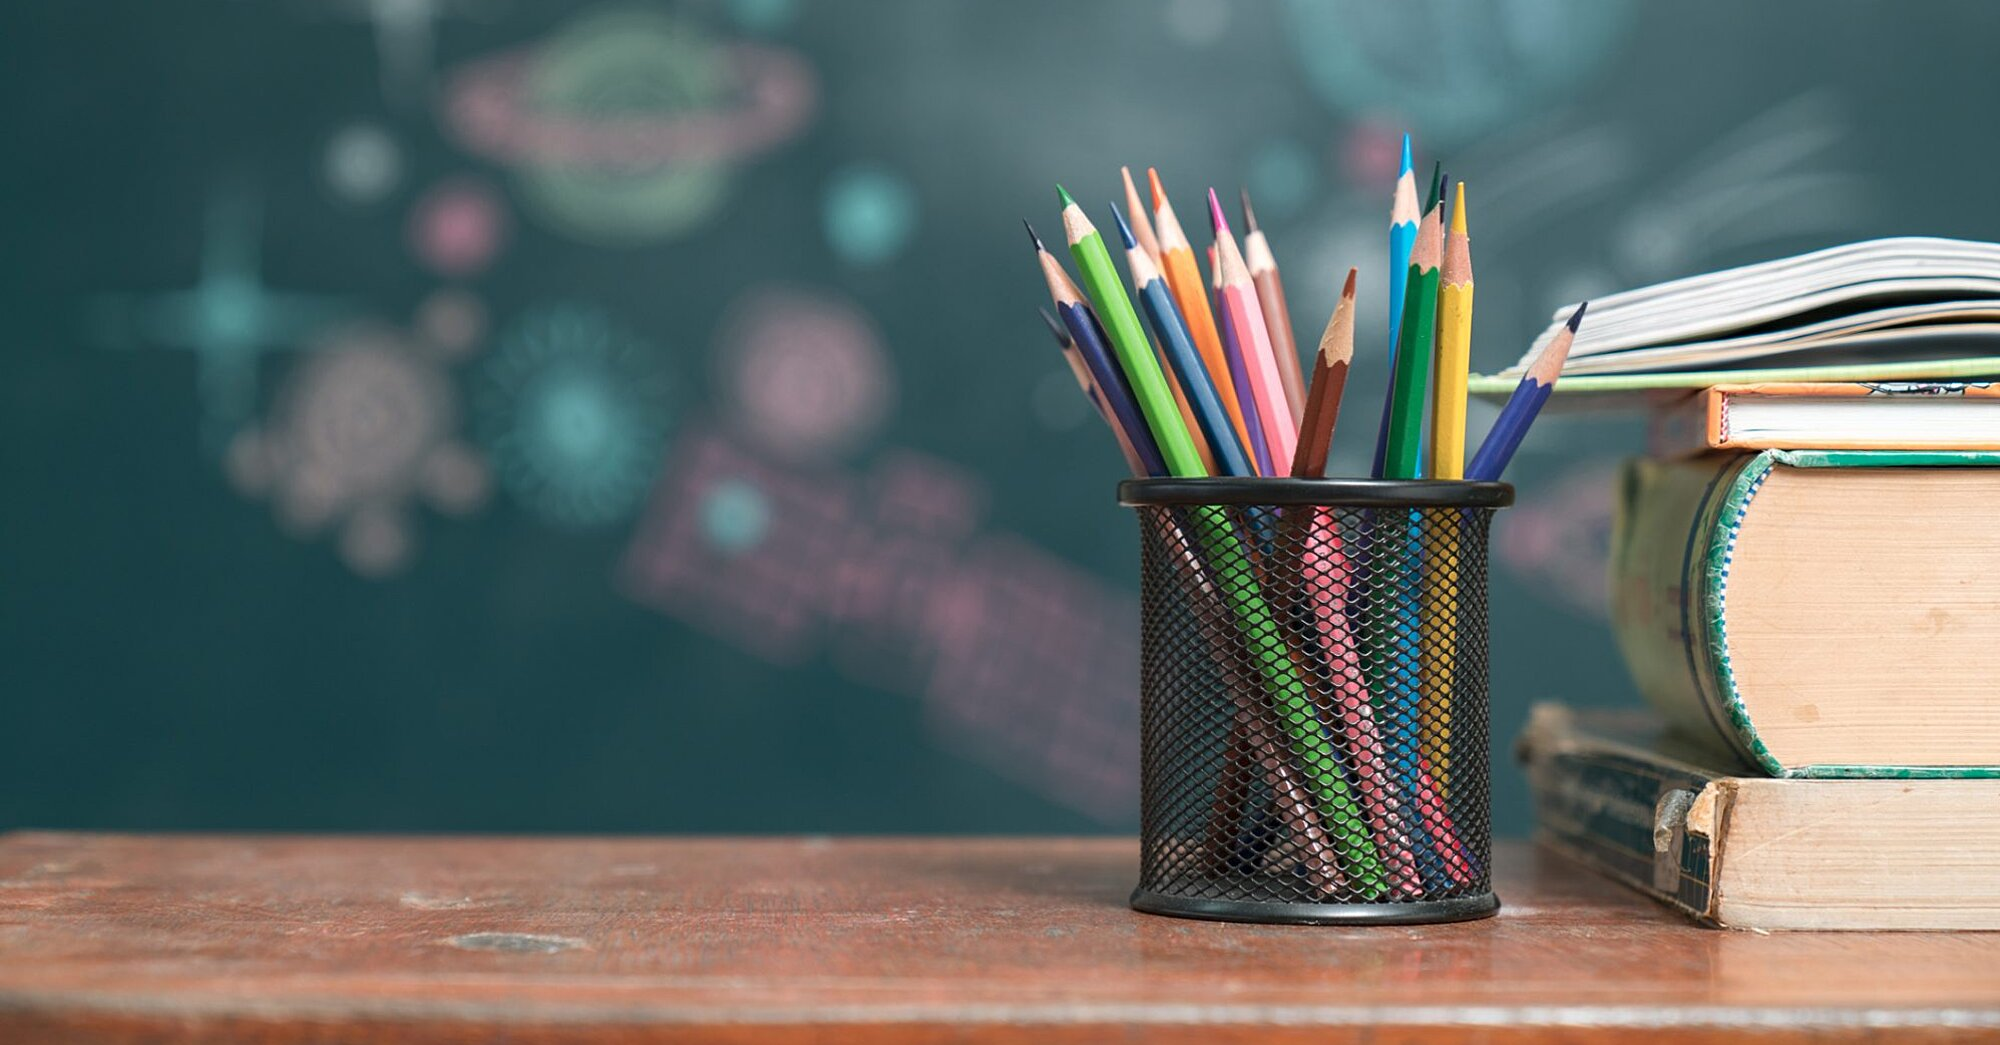 Find Out How to #ClearTheList to Support Teachers Returning to School